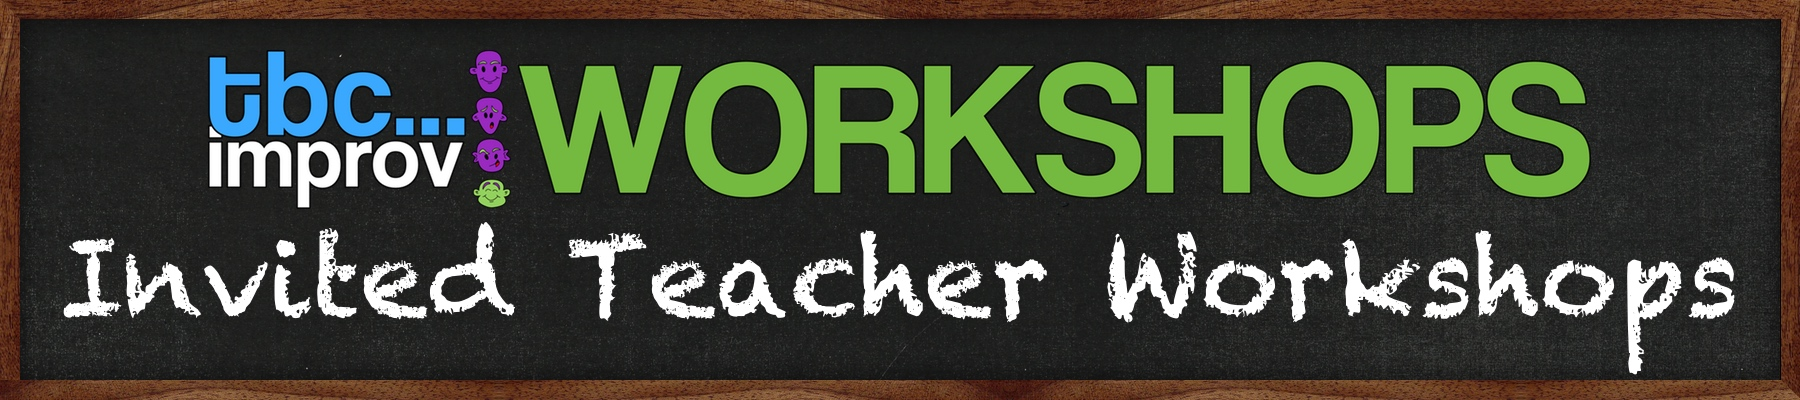 Invited Teacher Workshops